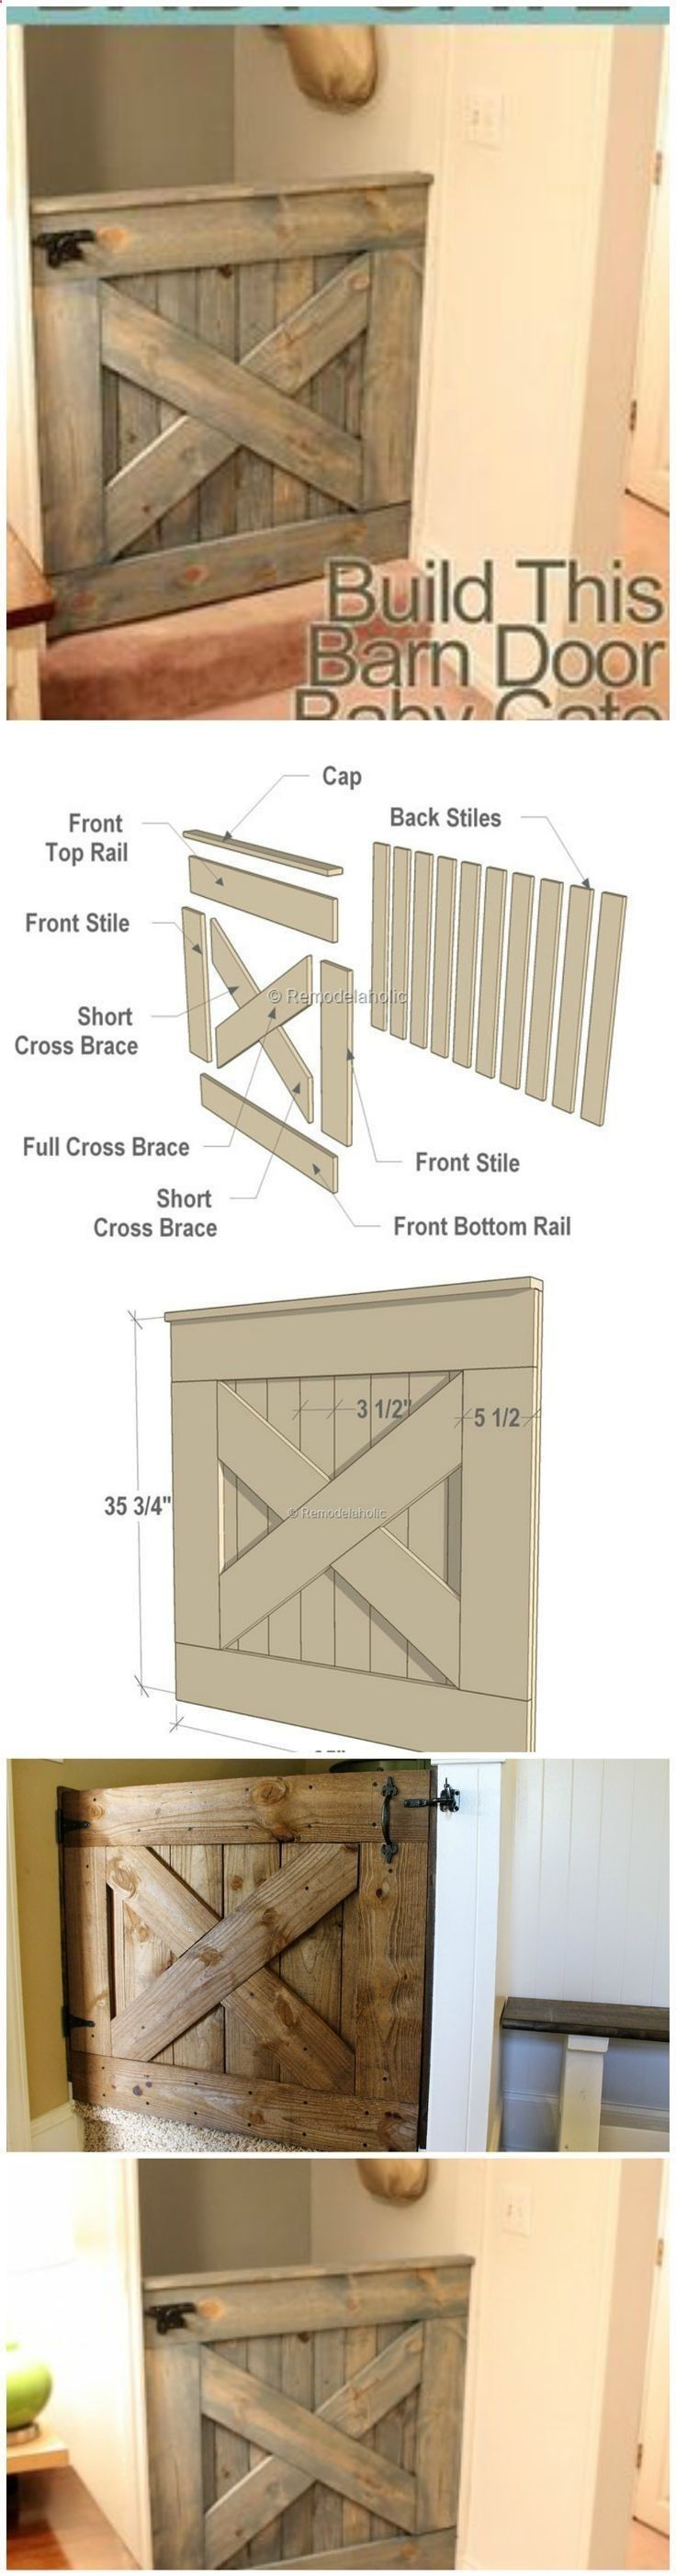 Plans Of Woodworking Diy Projects  Hunting To Find Tips